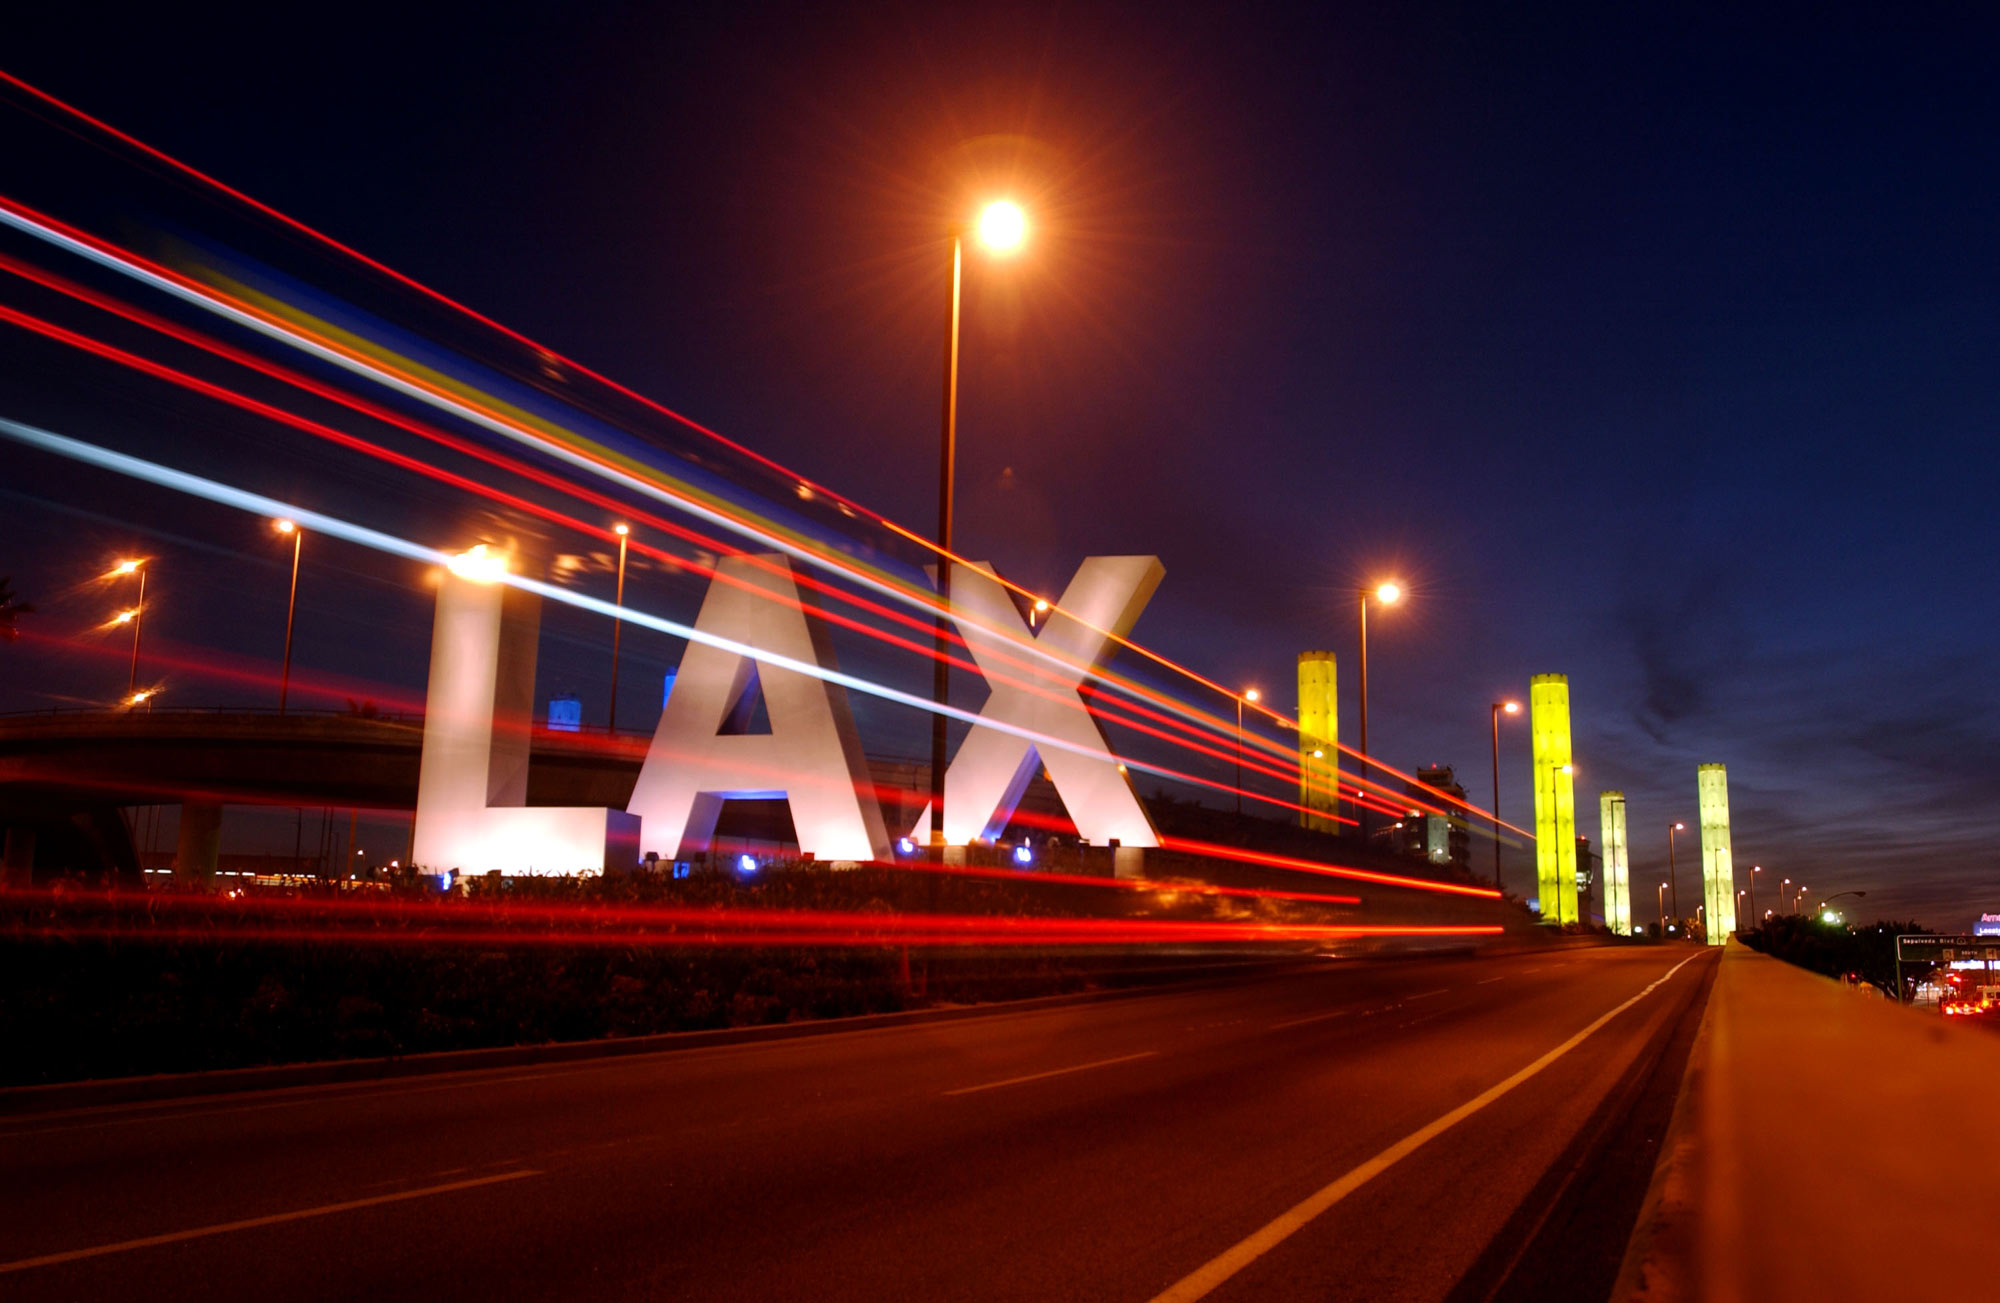 Los Angeles International Airport Possible Site of Future Attacks